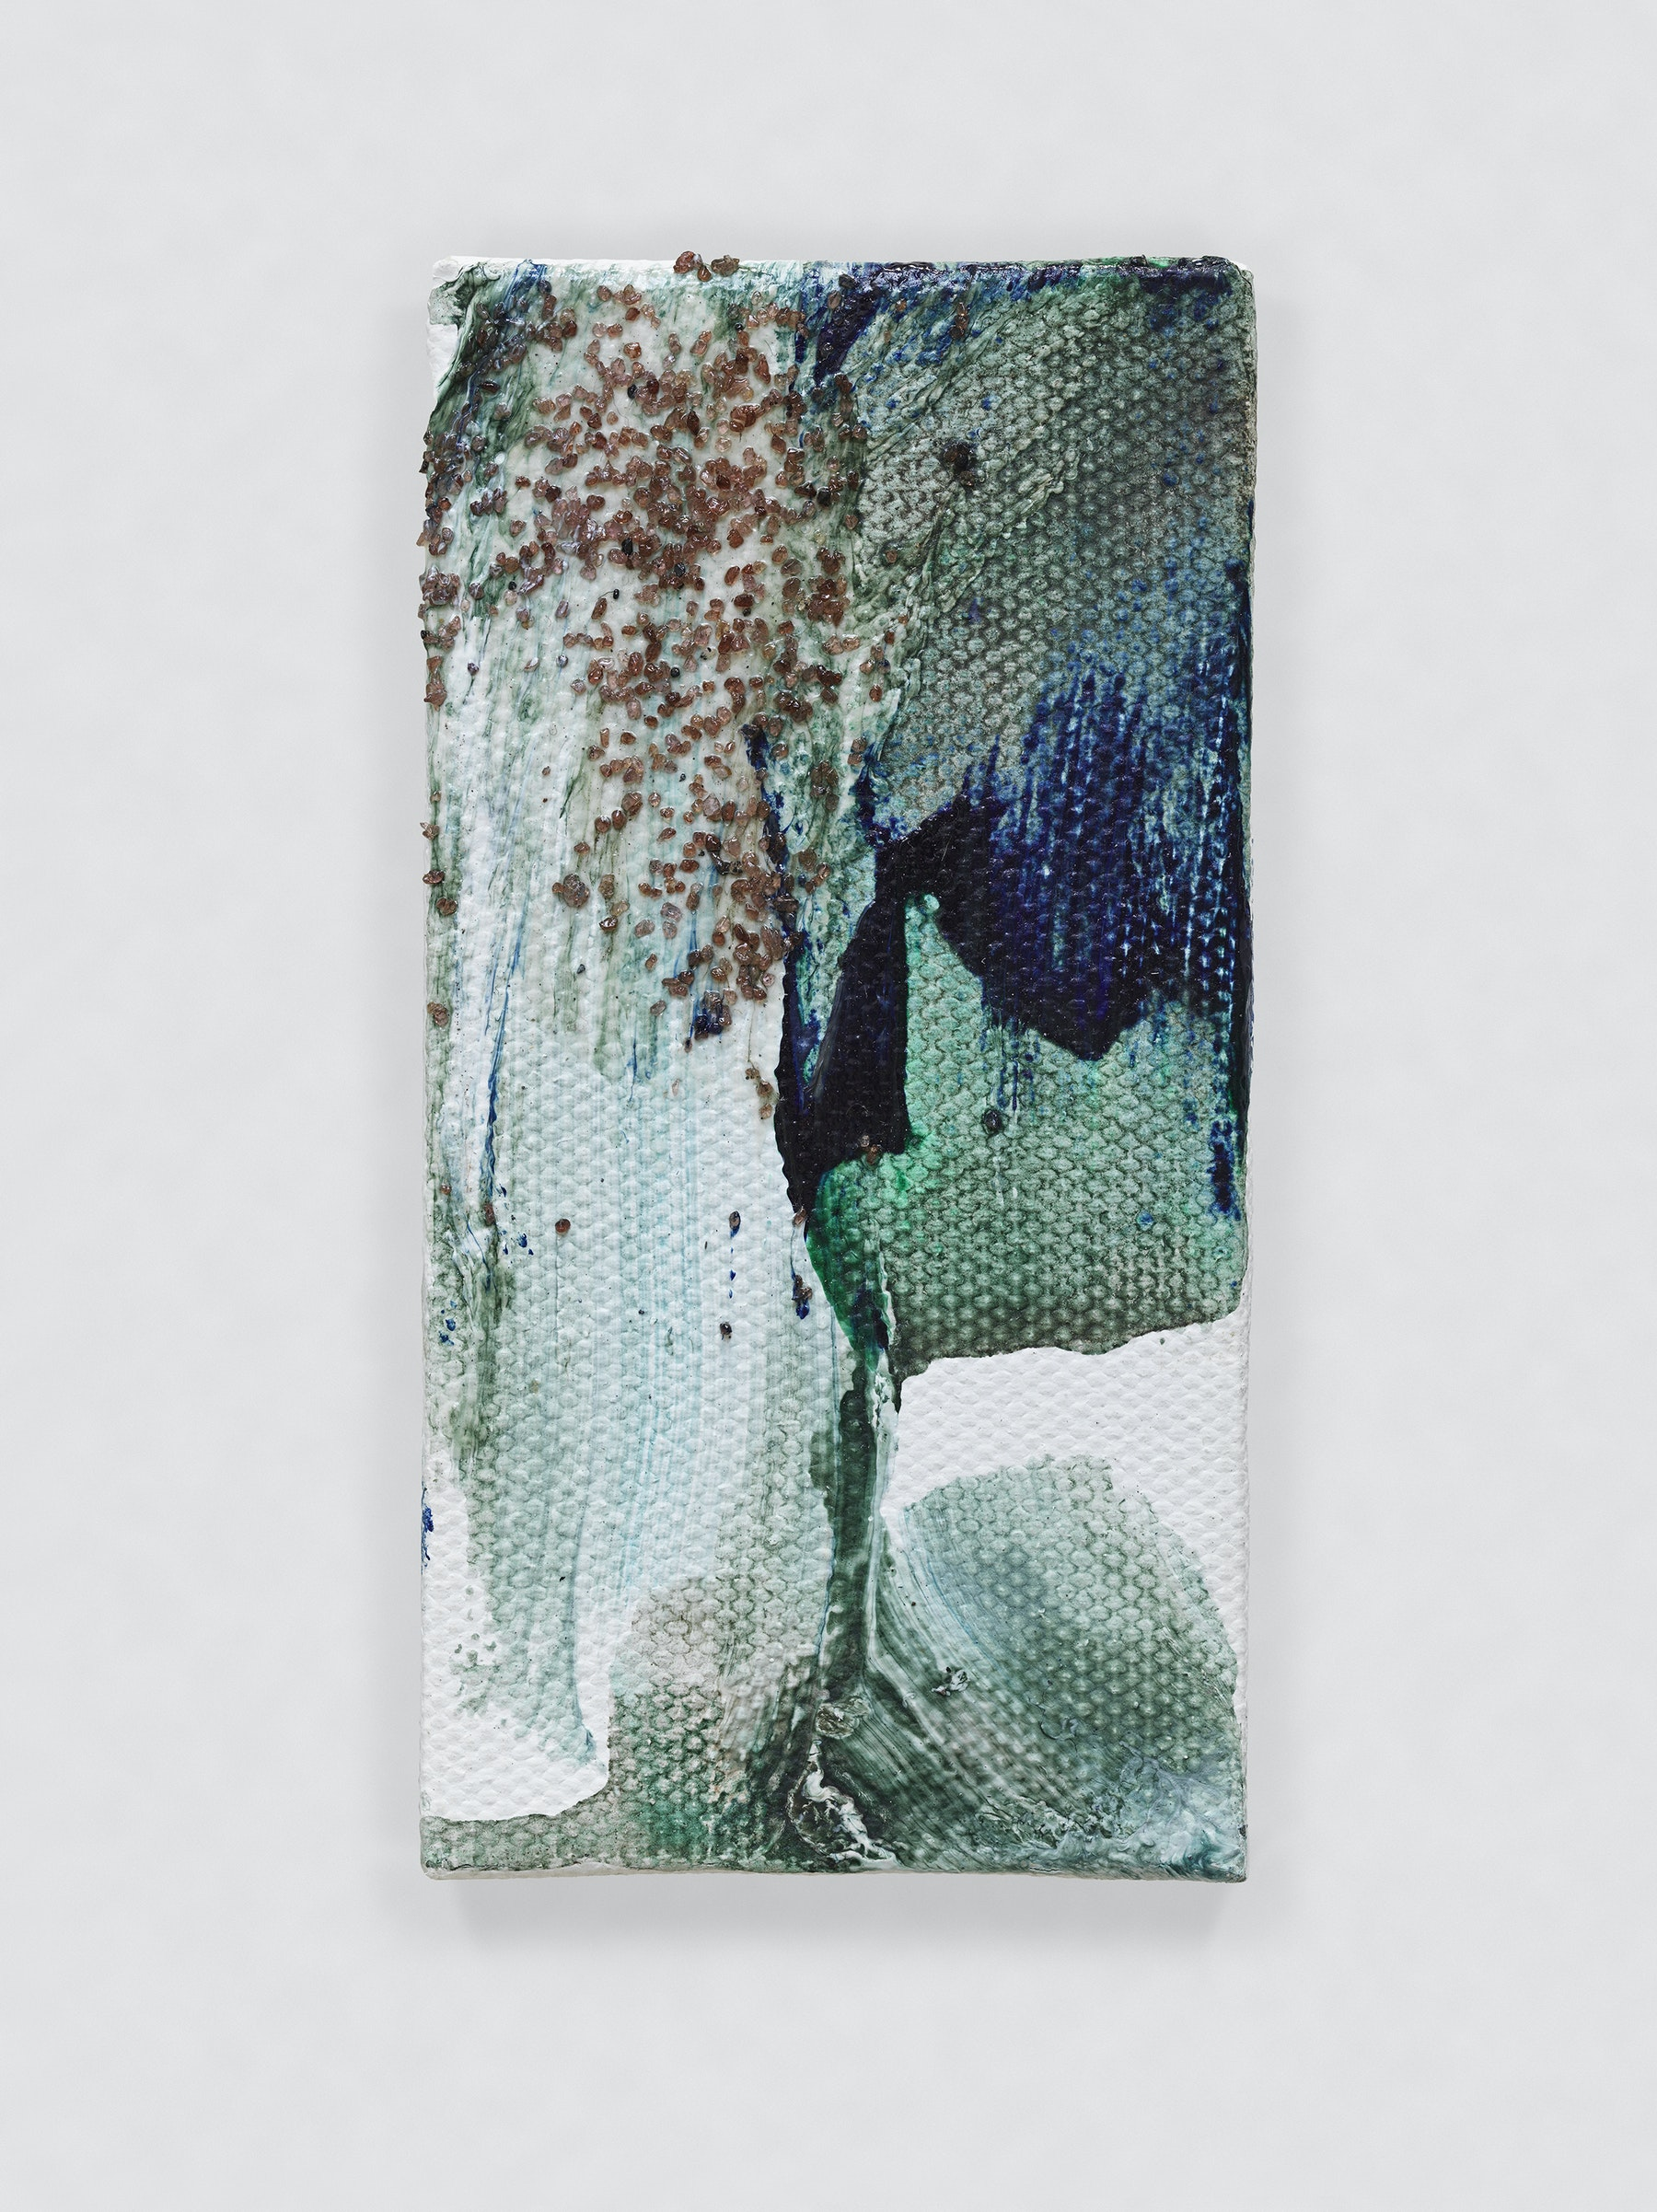 """Louise Fishman """"UNTITLED,"""" 2014 Oil, sand and glue on canvas 4.06 x 2.09"""" [HxW] (10.31 x 5.31 cm) Inventory #FIS141 Courtesy of the artist and Vielmetter Los Angeles Photo credit: Genevieve Hanson Signed and dated on verso"""